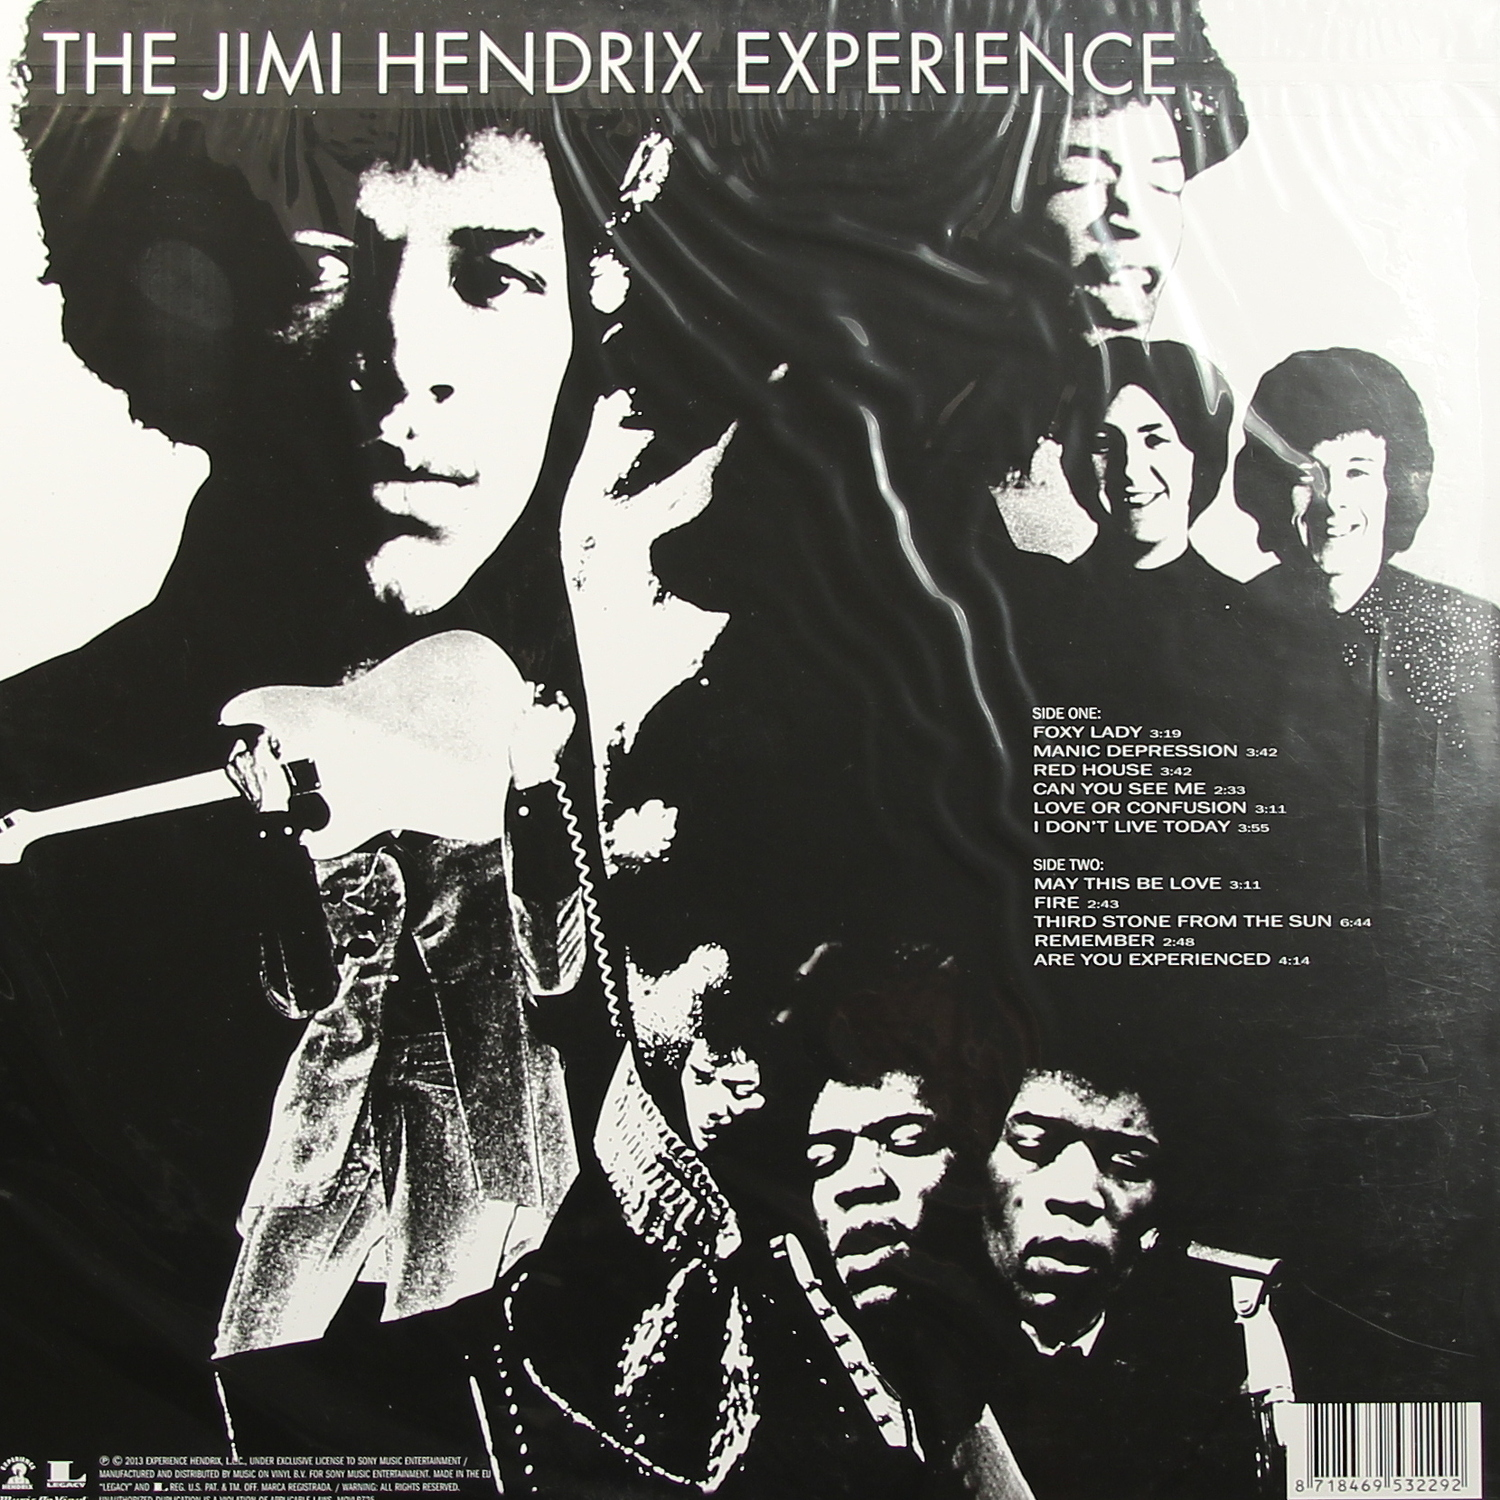 jimi hendrix are you experienced essay Jimi hendrix jimi hendrix, possibly the greatest guitarist in rock history changed the sound of rock in 1967 the jimi hendrix experience rocked the nation with their first album are you.